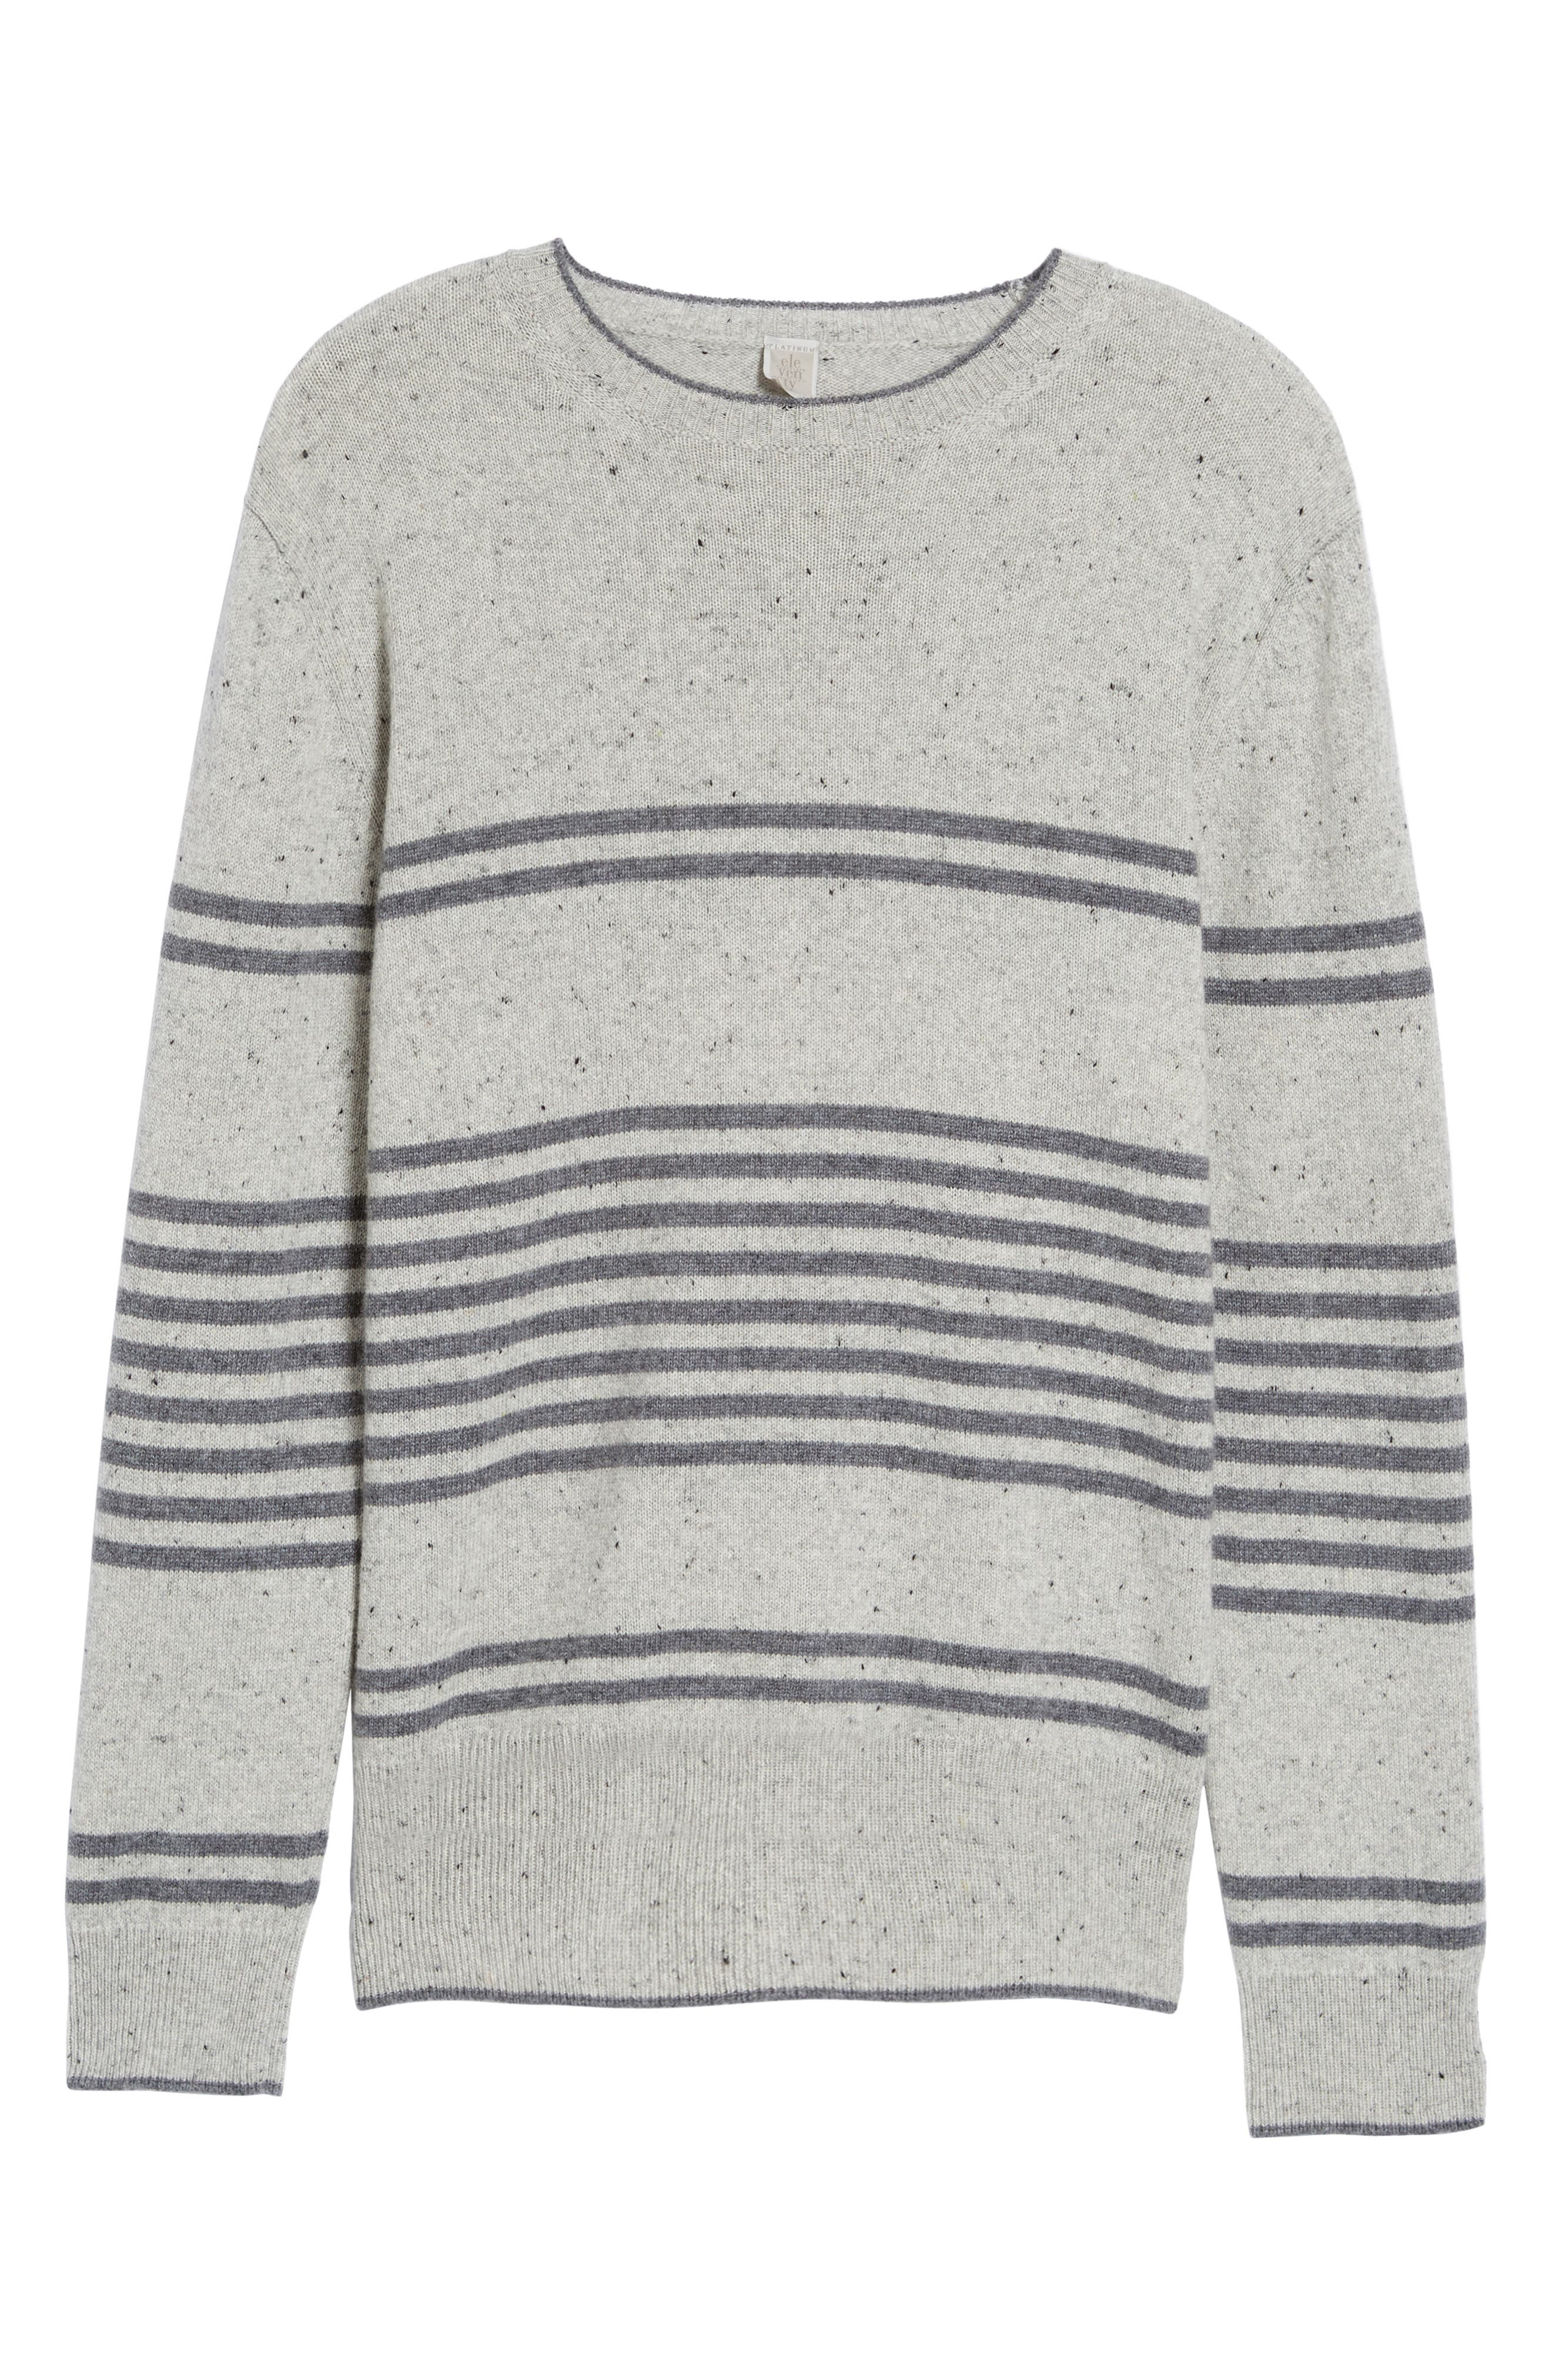 Donegal Stripe Cashmere Sweater,                             Alternate thumbnail 6, color,                             020